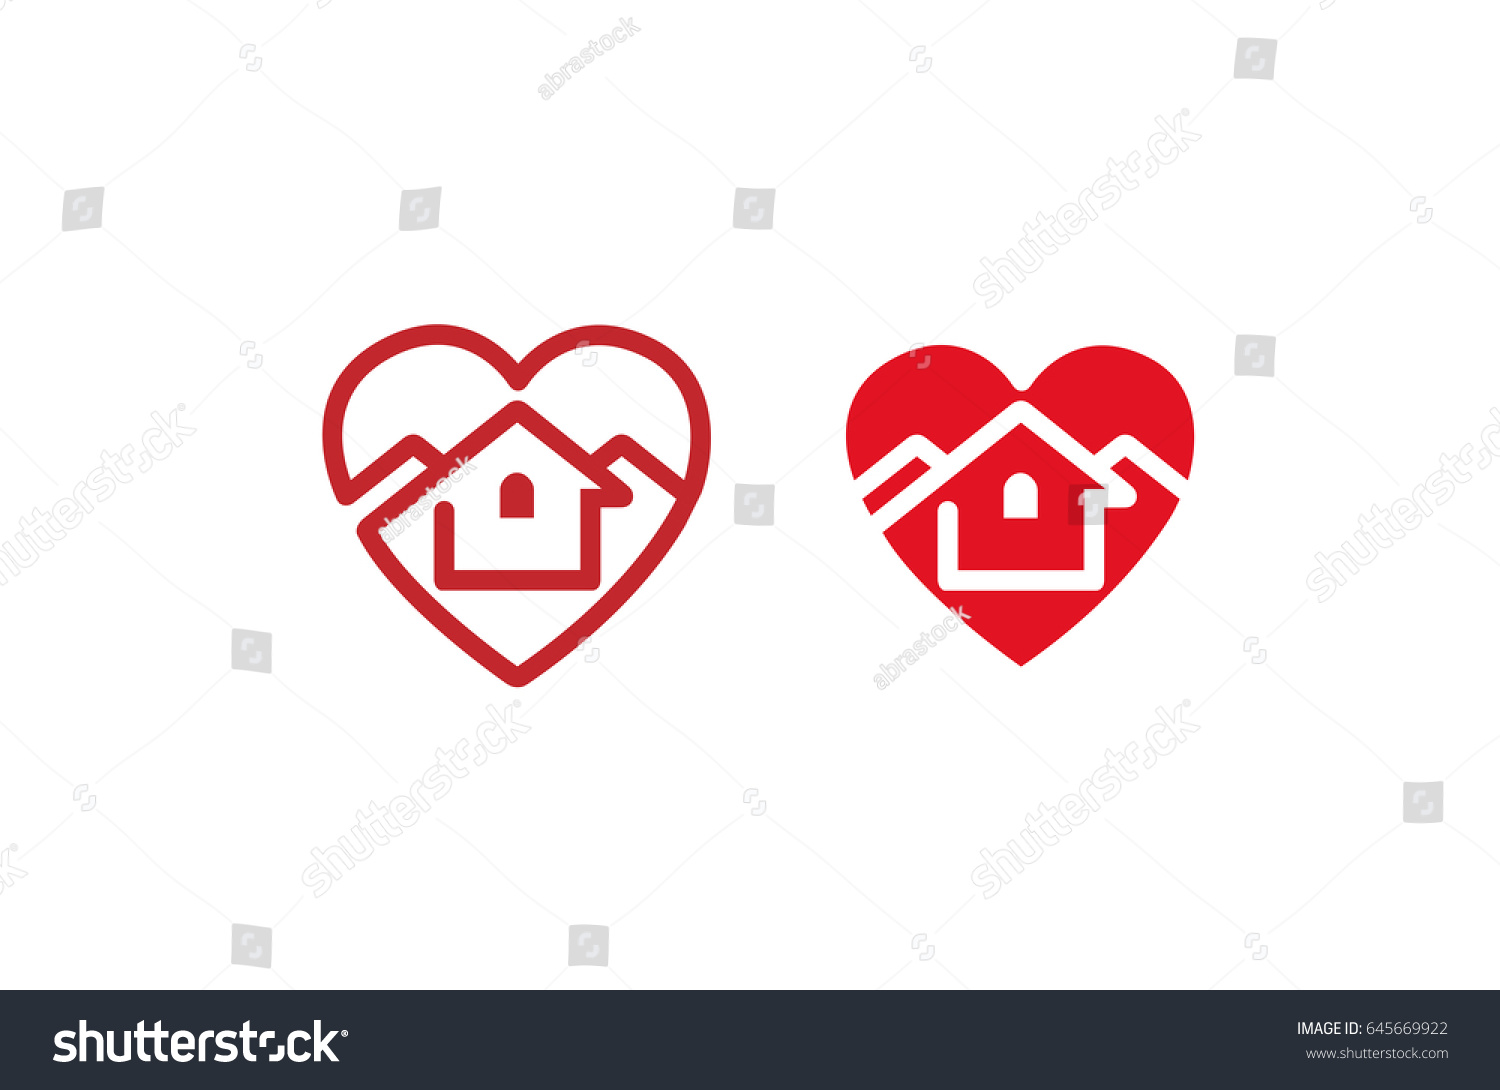 House design logo - Creative Heart House Design Logo Illustration